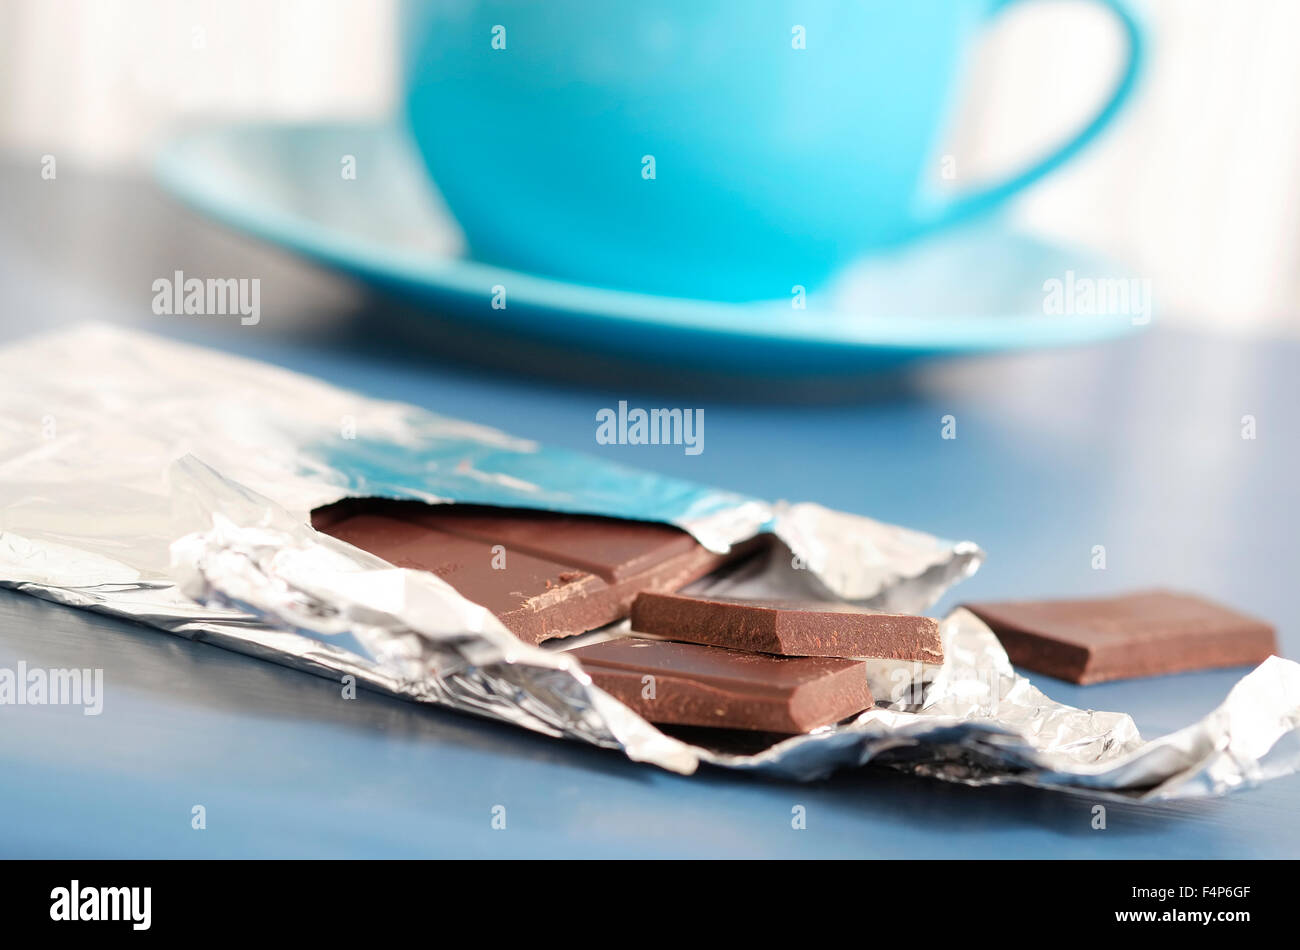 bar of dark chocolate on blue table top - Stock Image